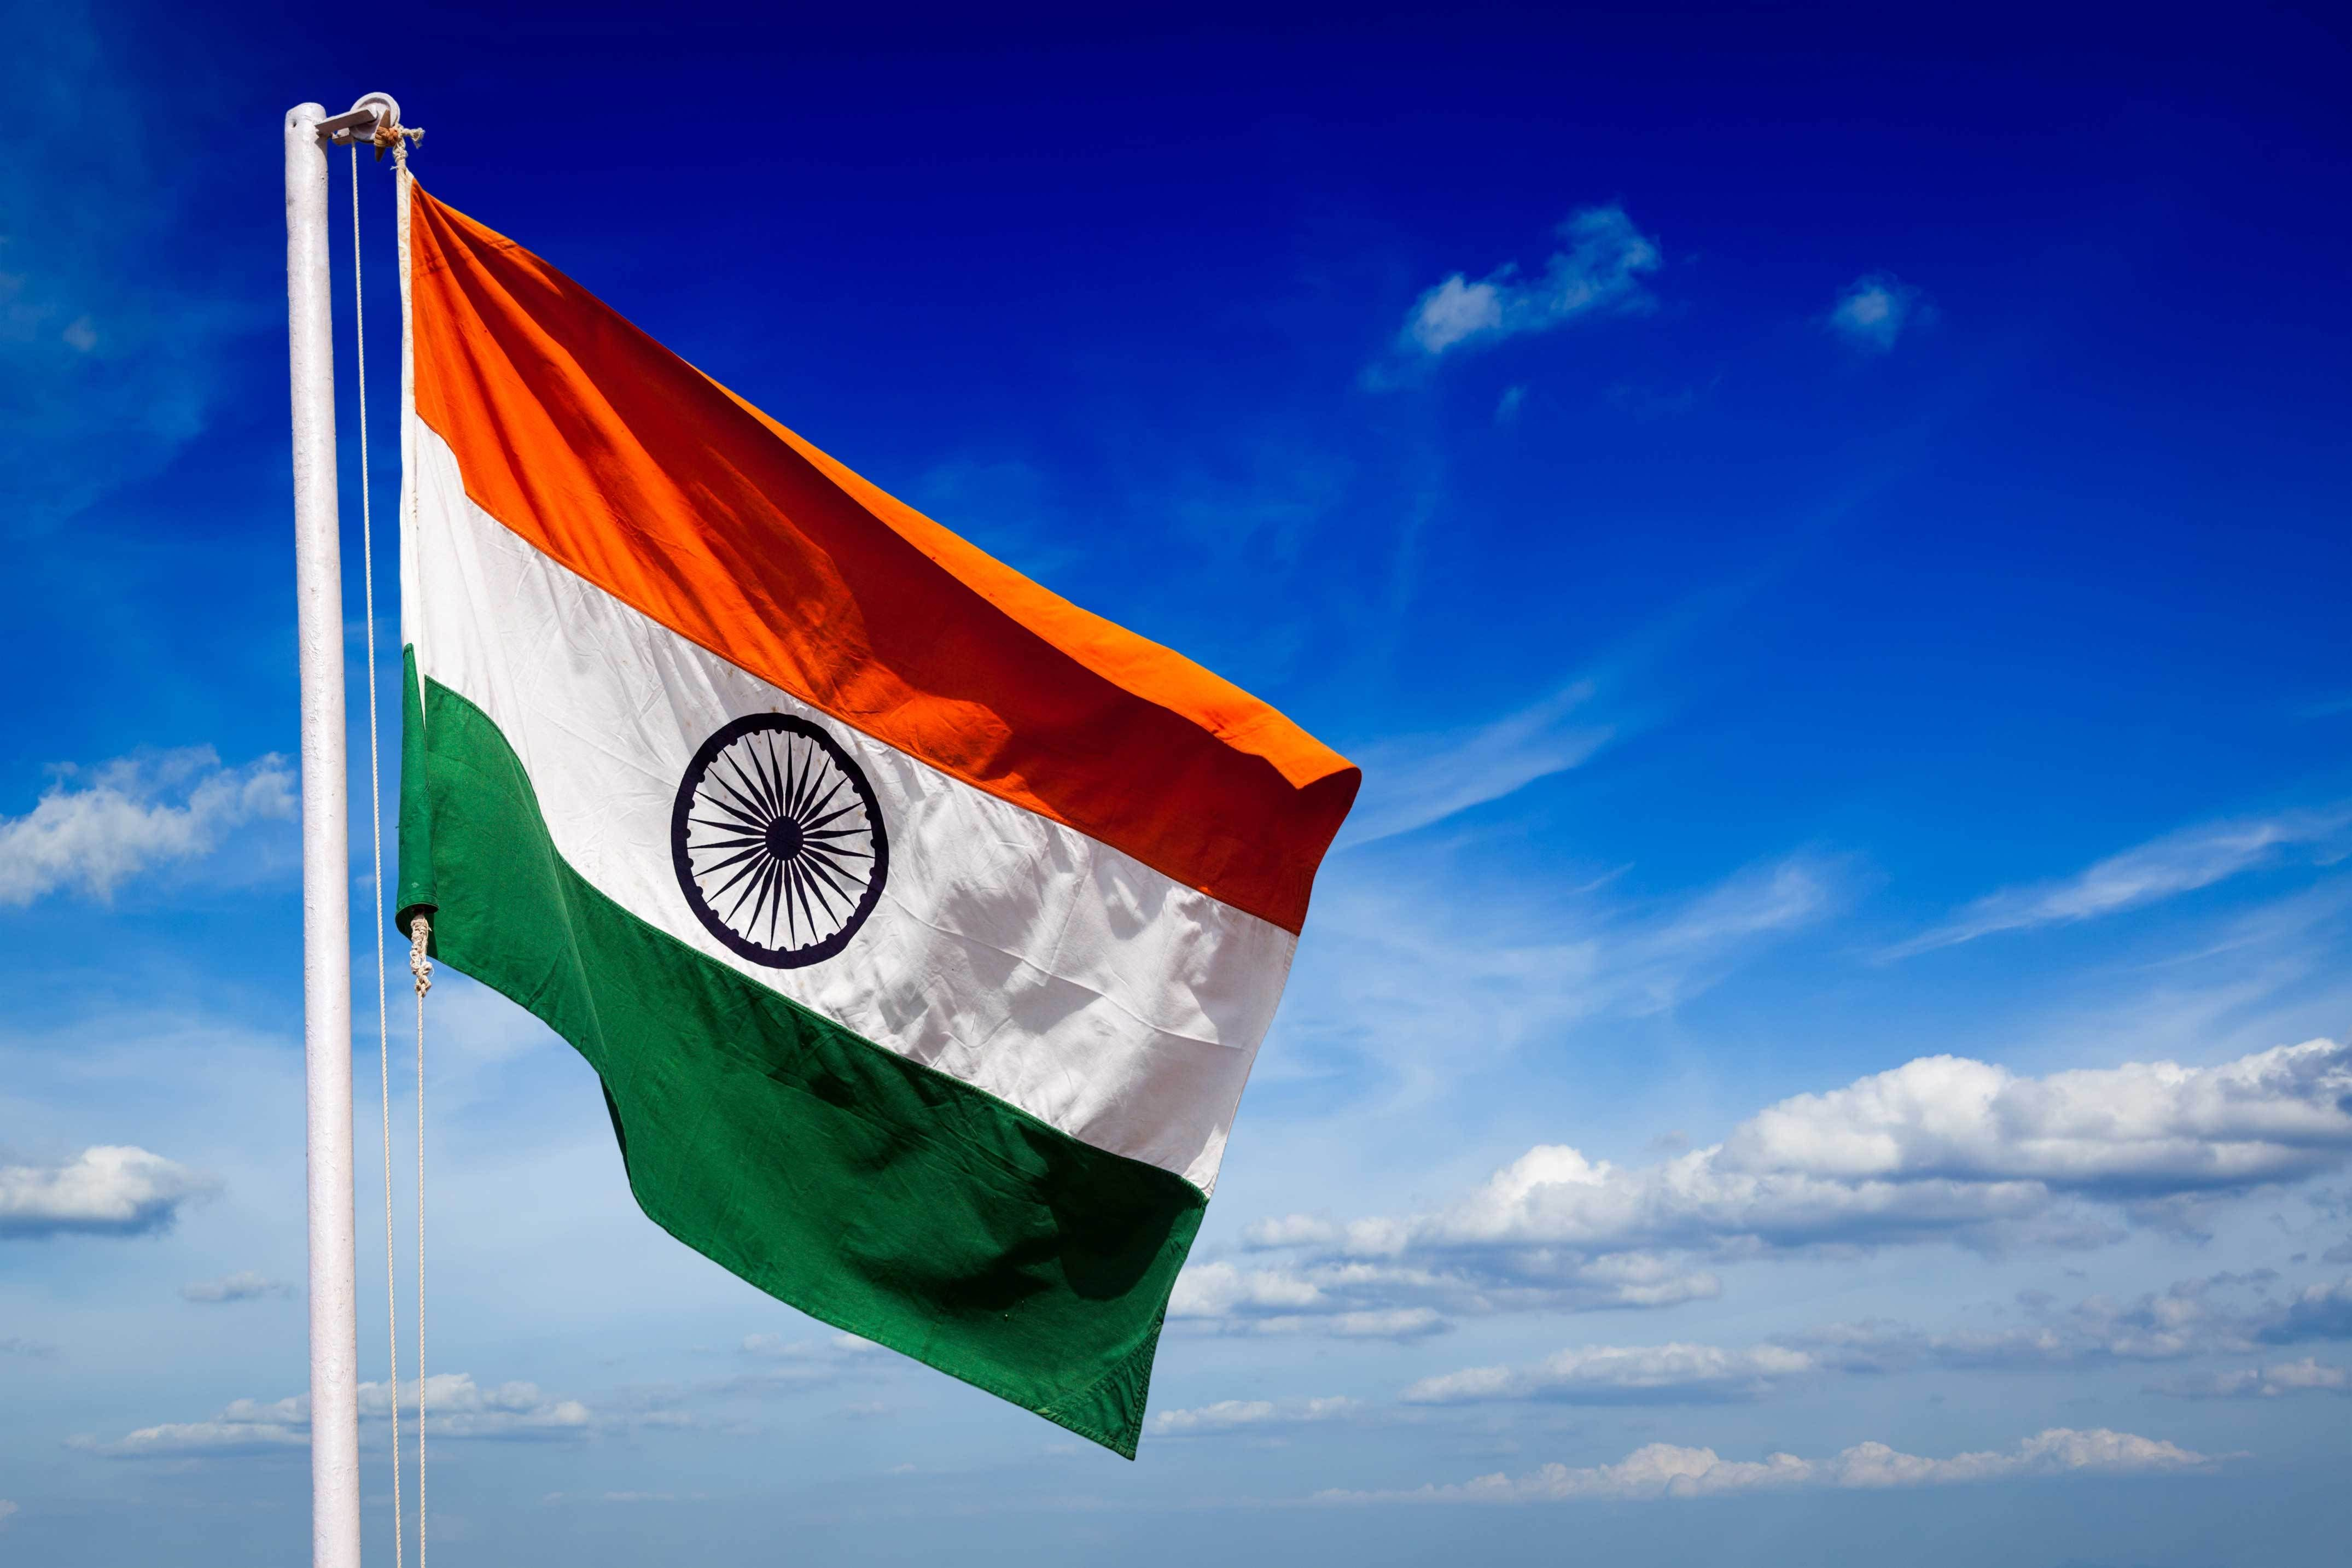 4300x2867 Best Indian Flag Images Hd Wallpapers Photos With Images Indian Flag Images Indian Flag Wallpaper Indian Flag Photos